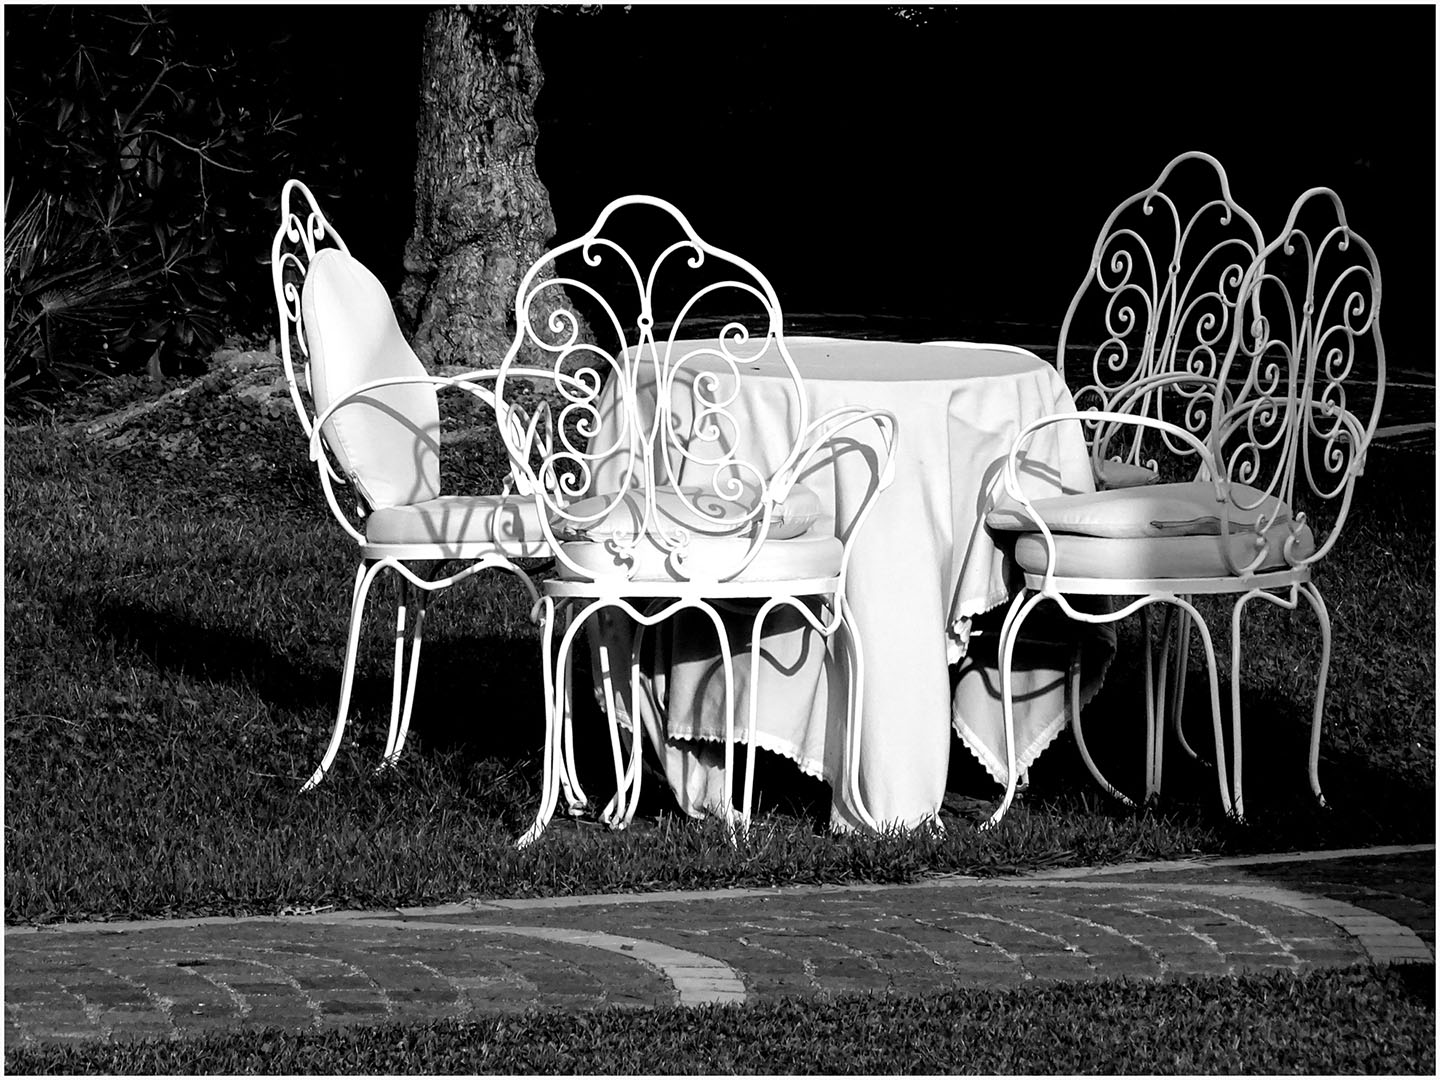 Table_Manners_in_Black_and_White_075_I17.25.90